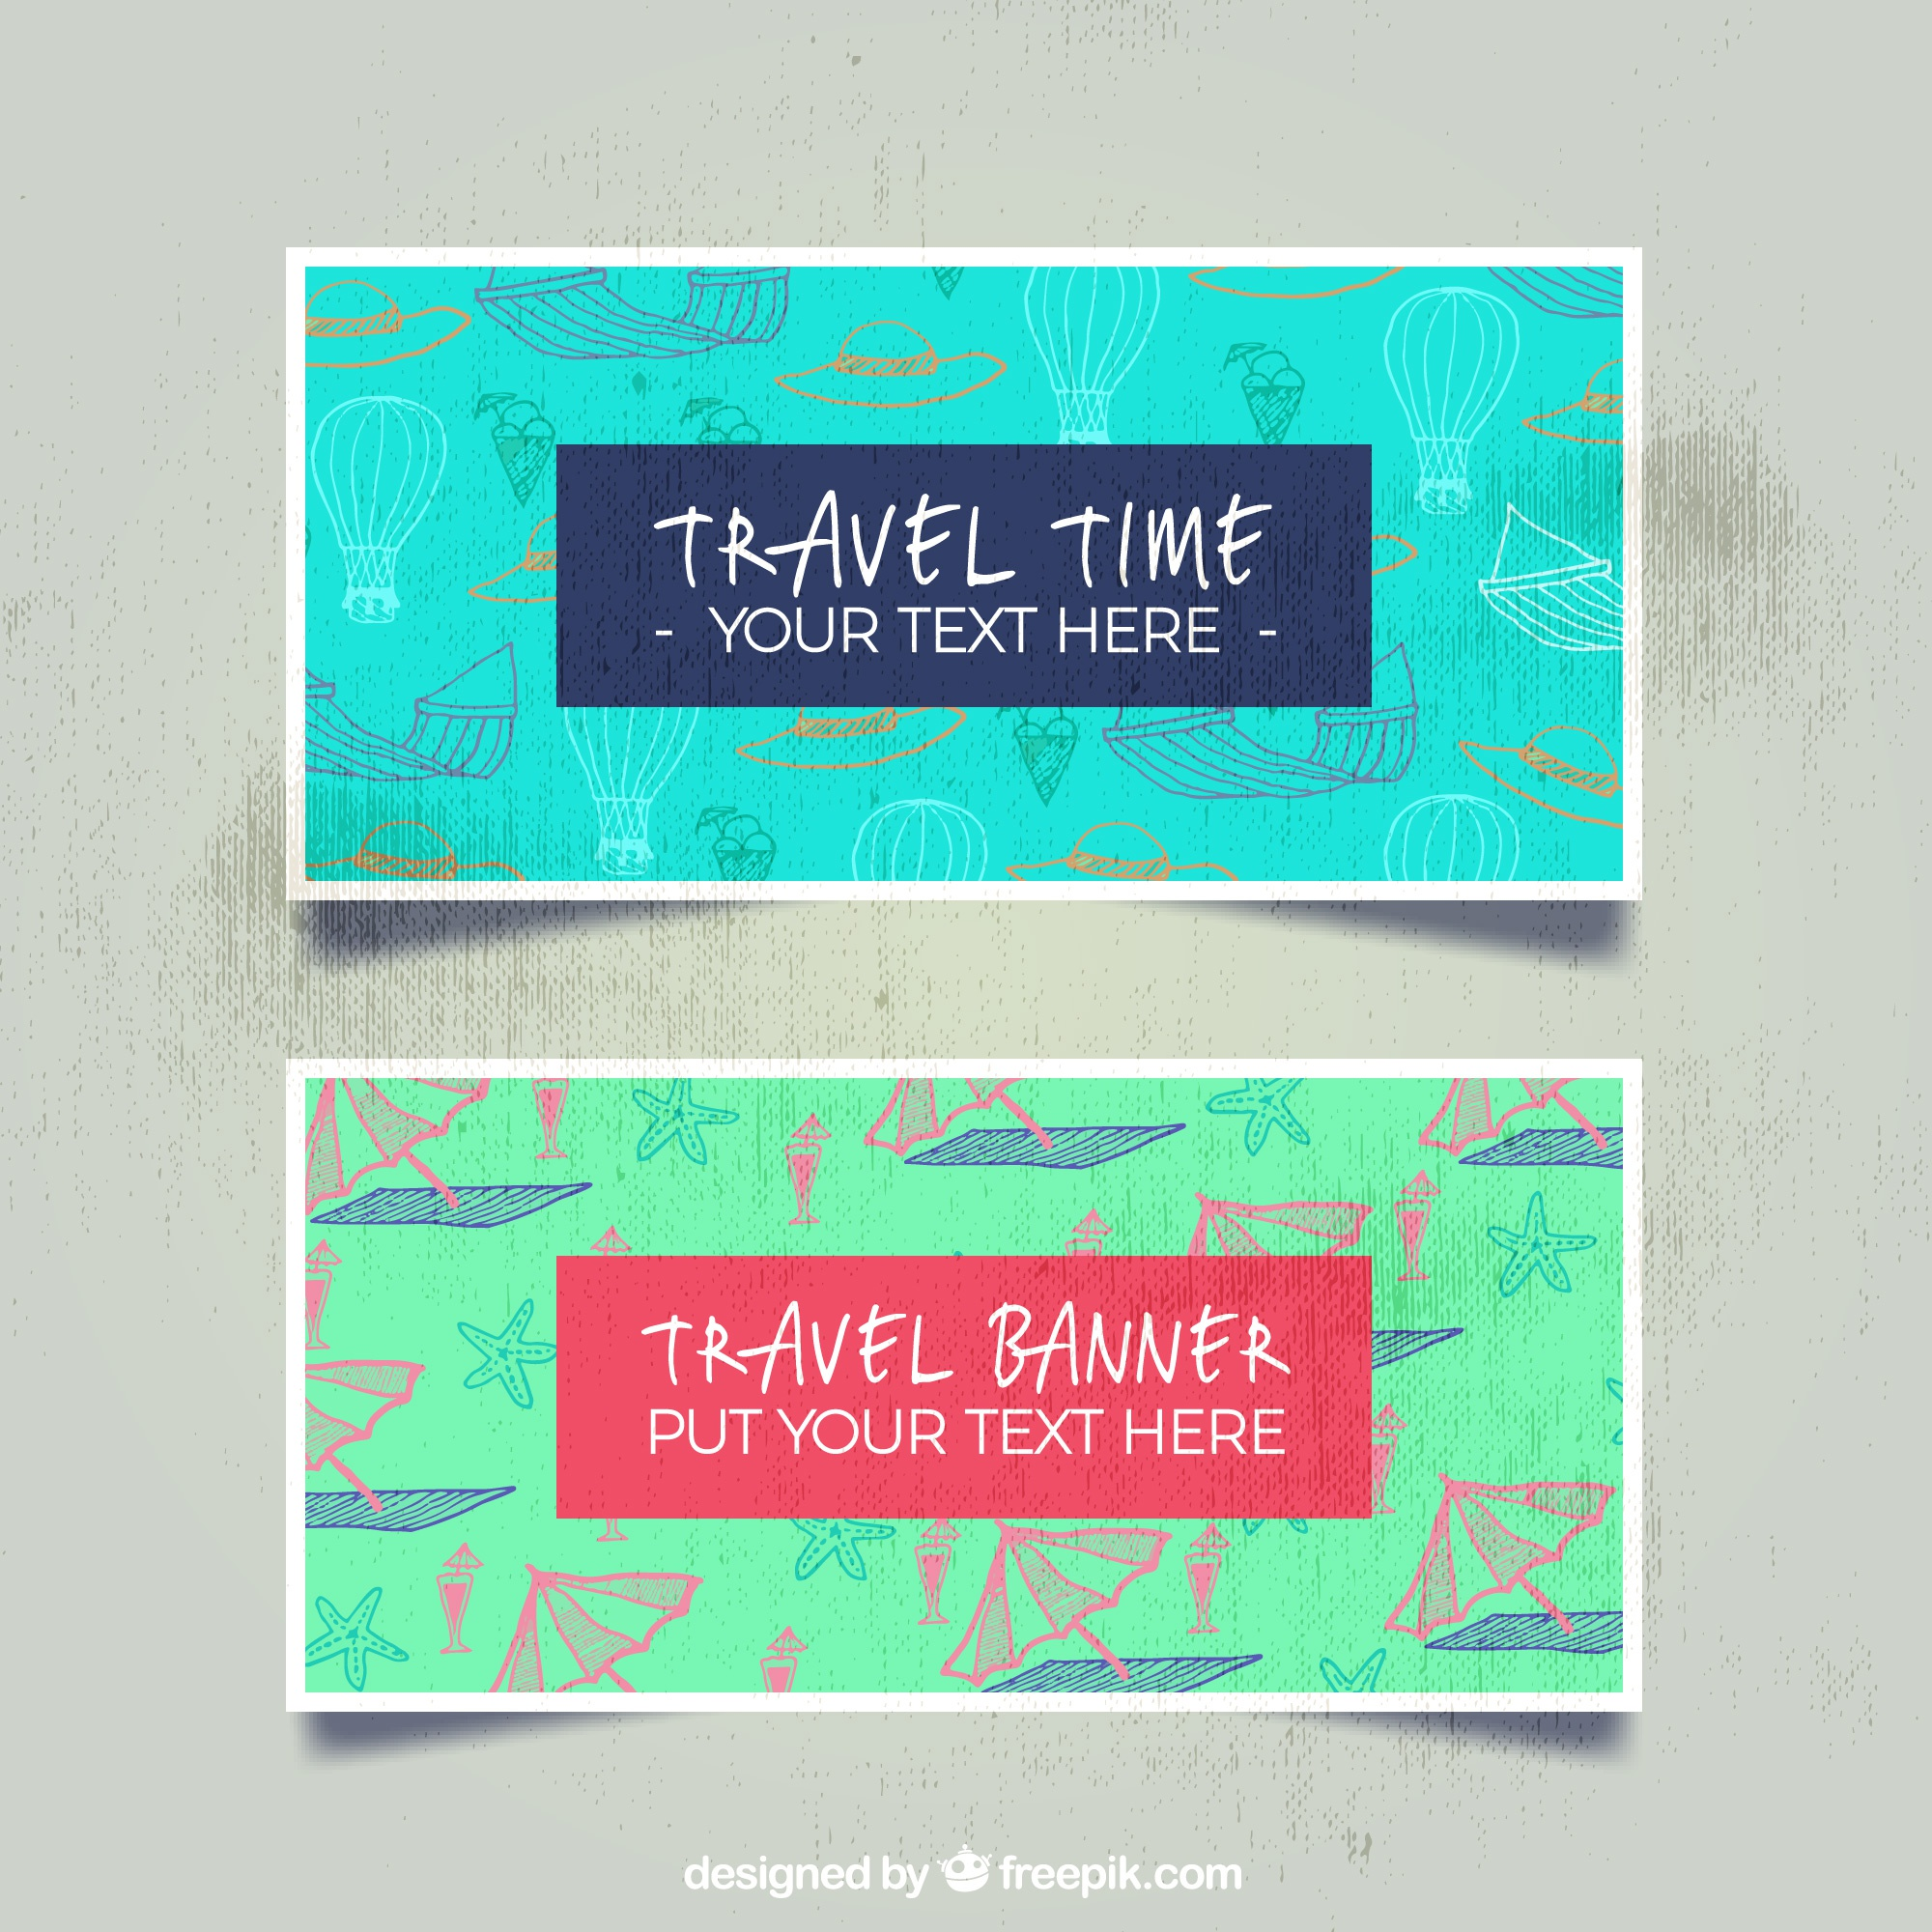 Travel banner with pattern background